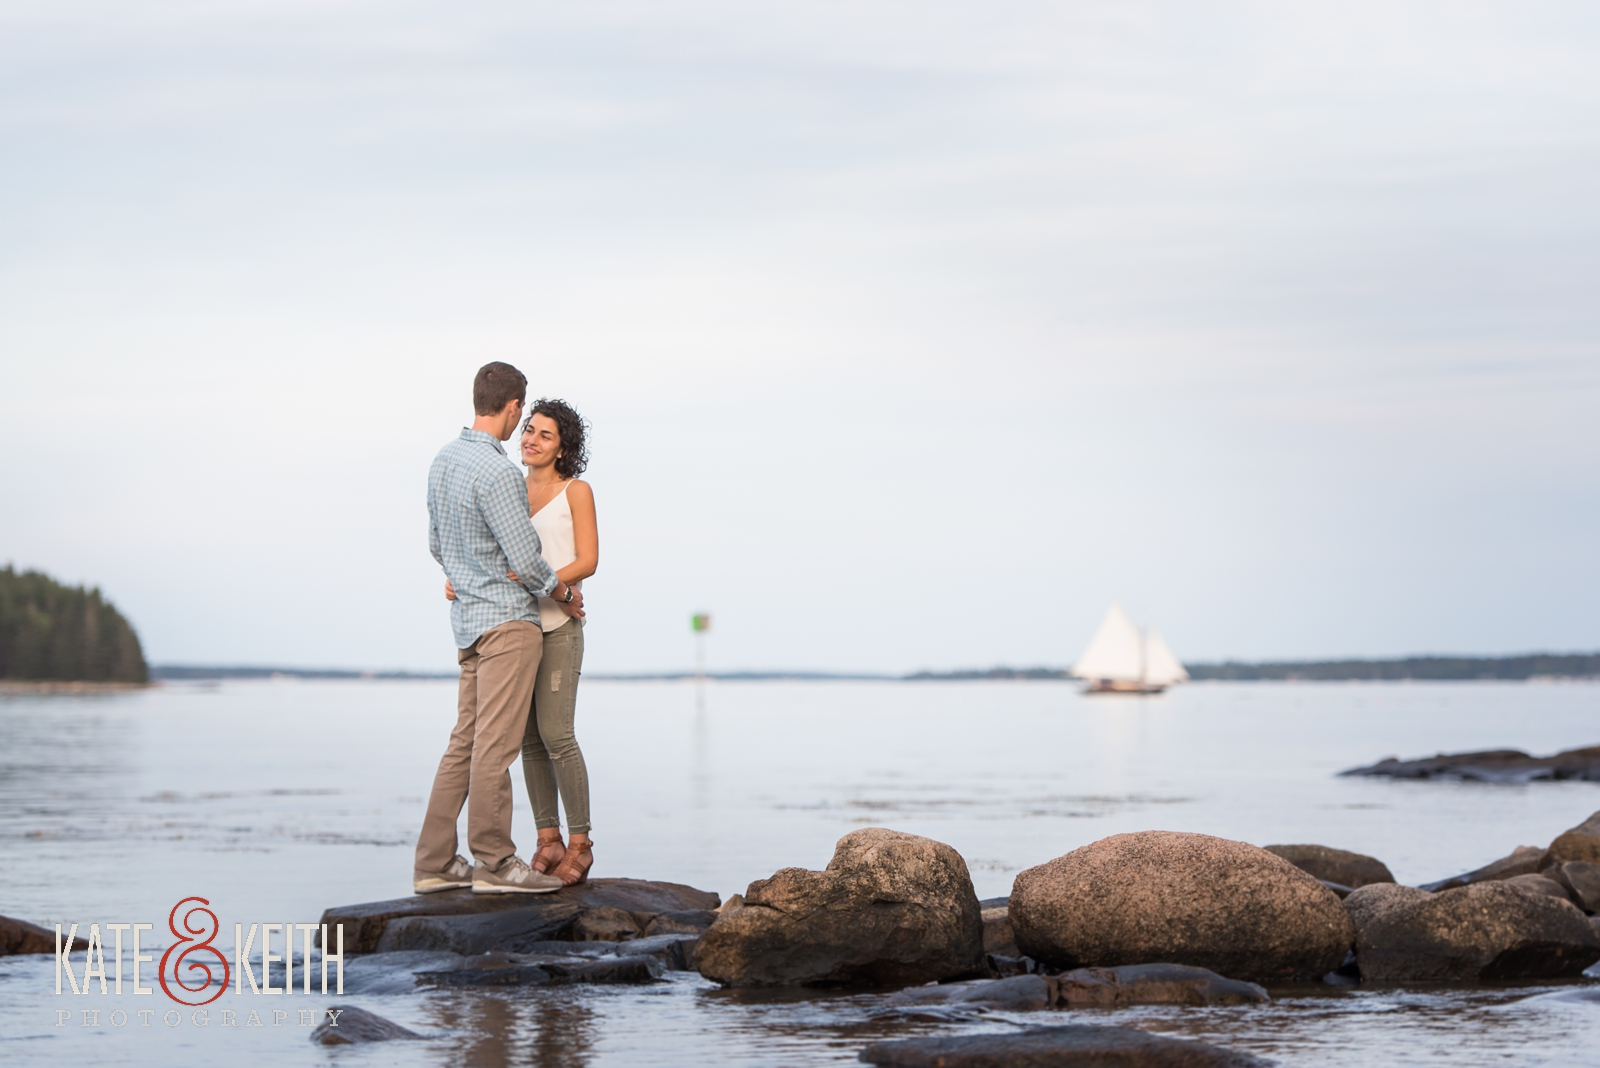 proposal photographers, surprise proposal, proposal in Acadia National Park, Southwest Harbor, Mount Desert Island, seaside, sunset proposal, engagement, getting engaged in Acadia National Park, rowboat, coastal Maine, New England, sailboats, dock, waterfront engagement